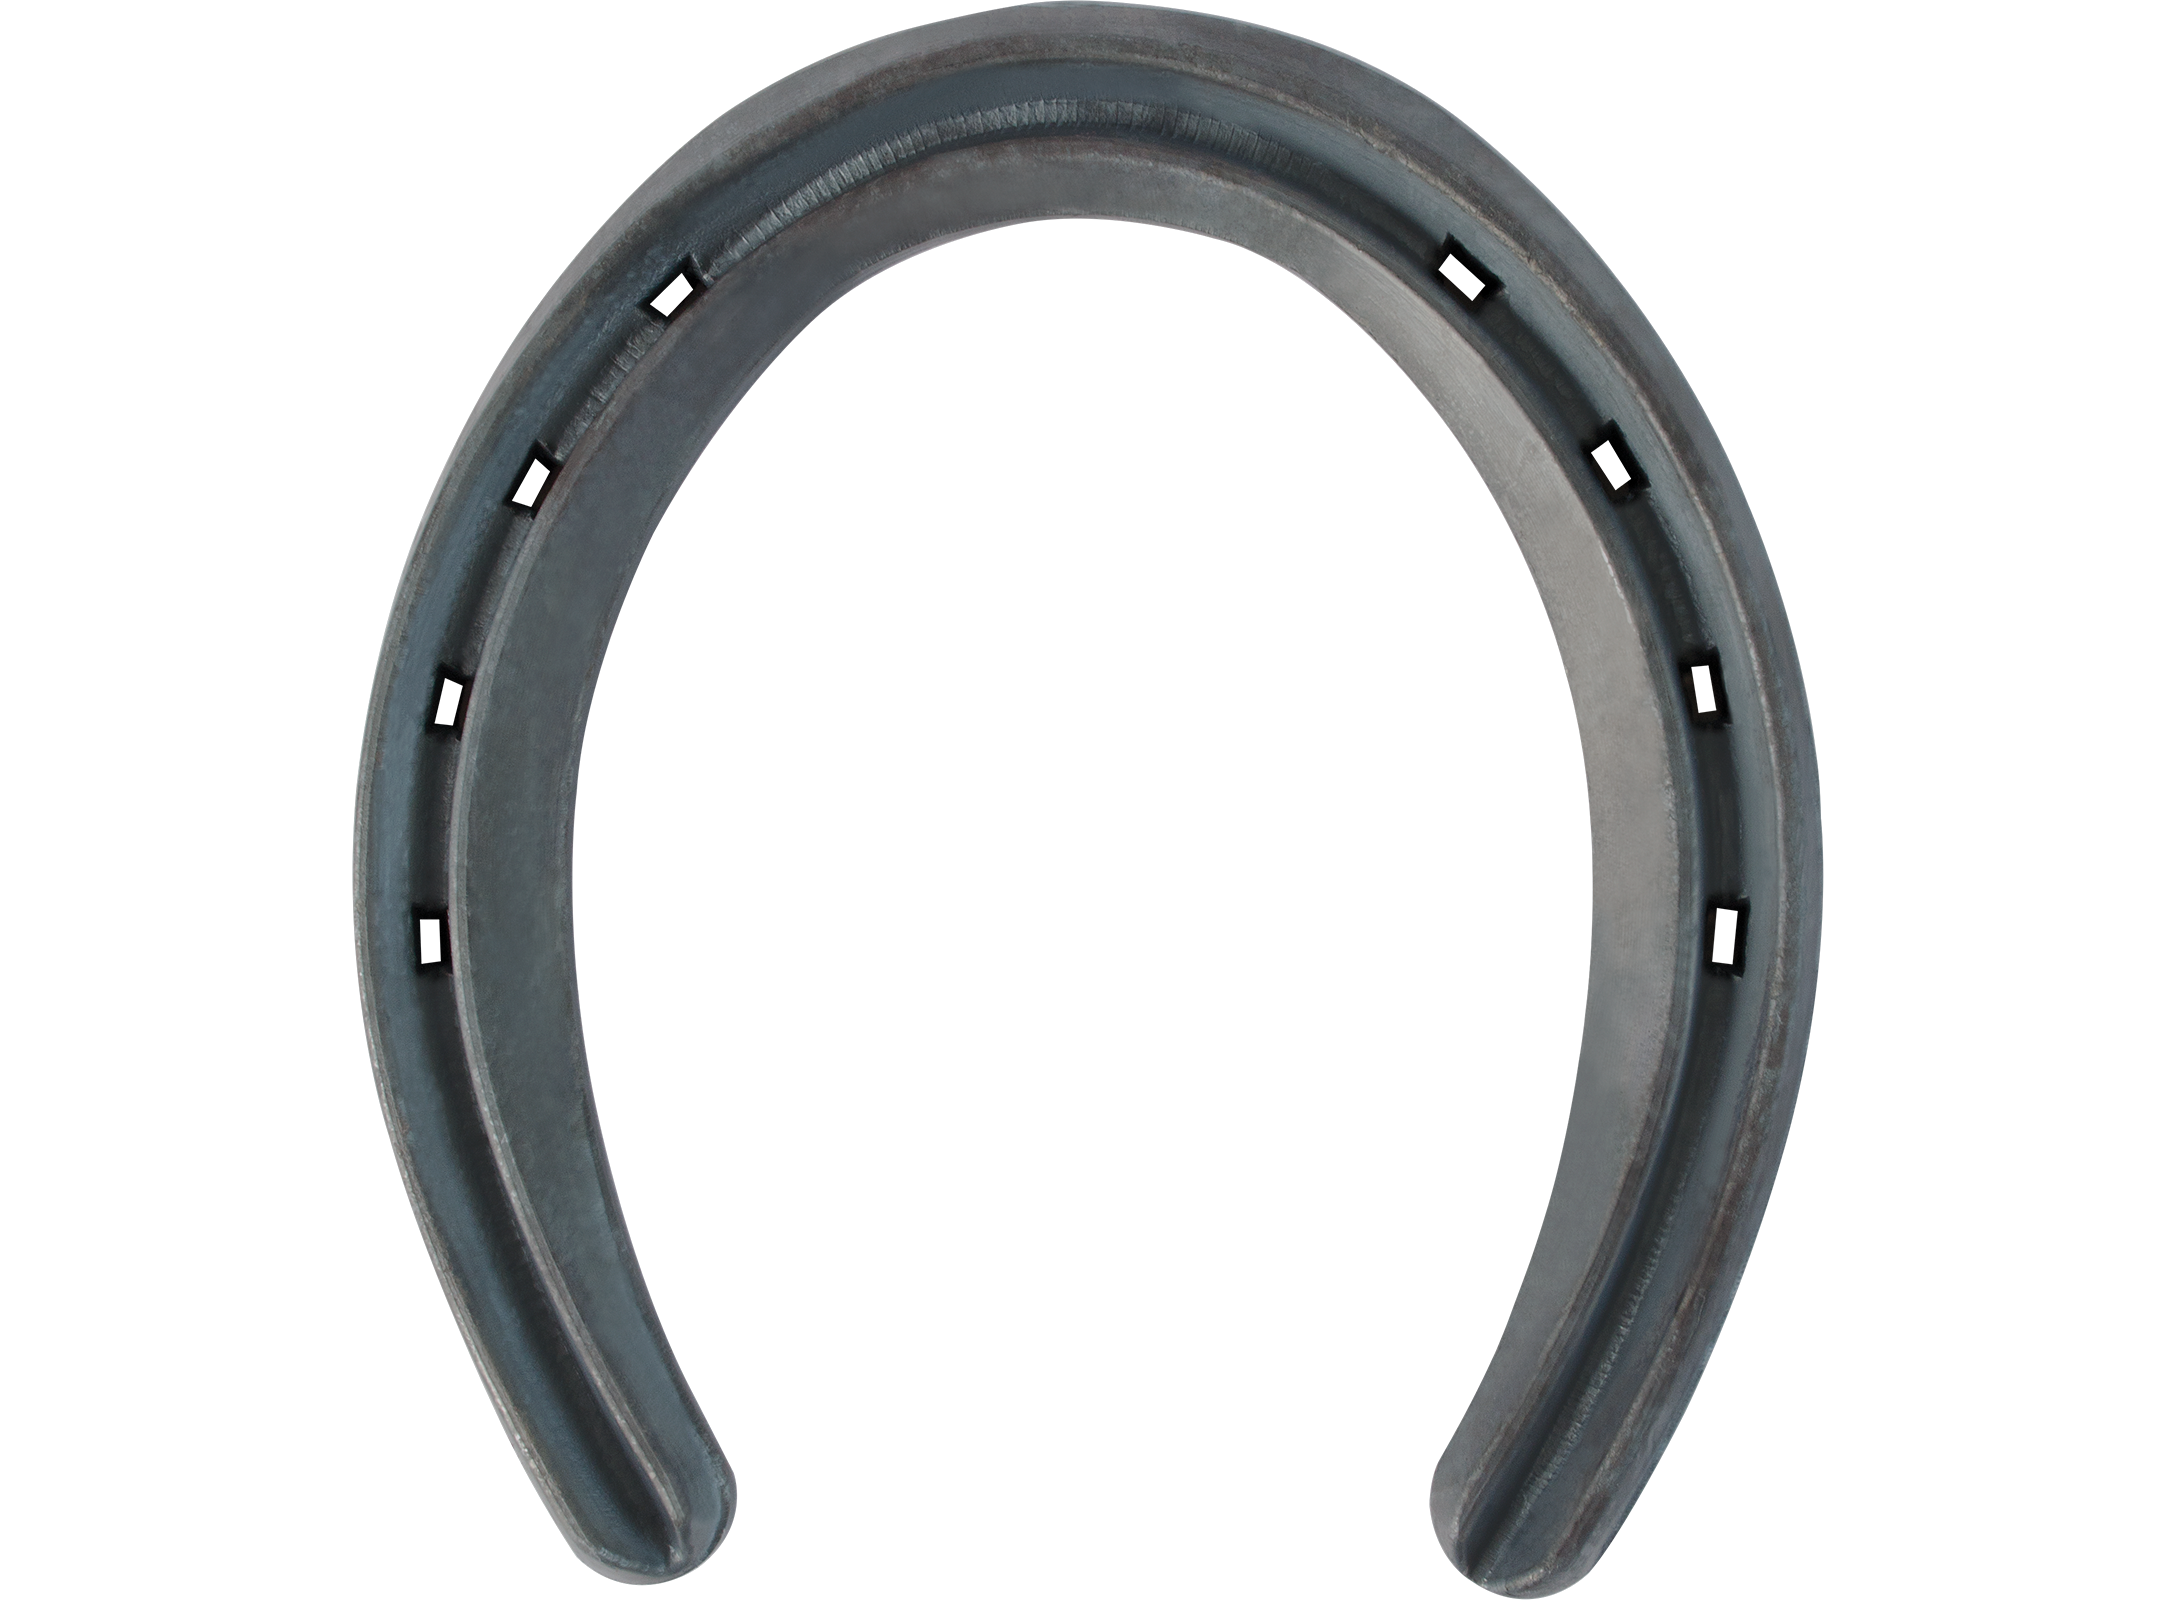 St. Croix Rim V-crease horseshoe, bottom side view